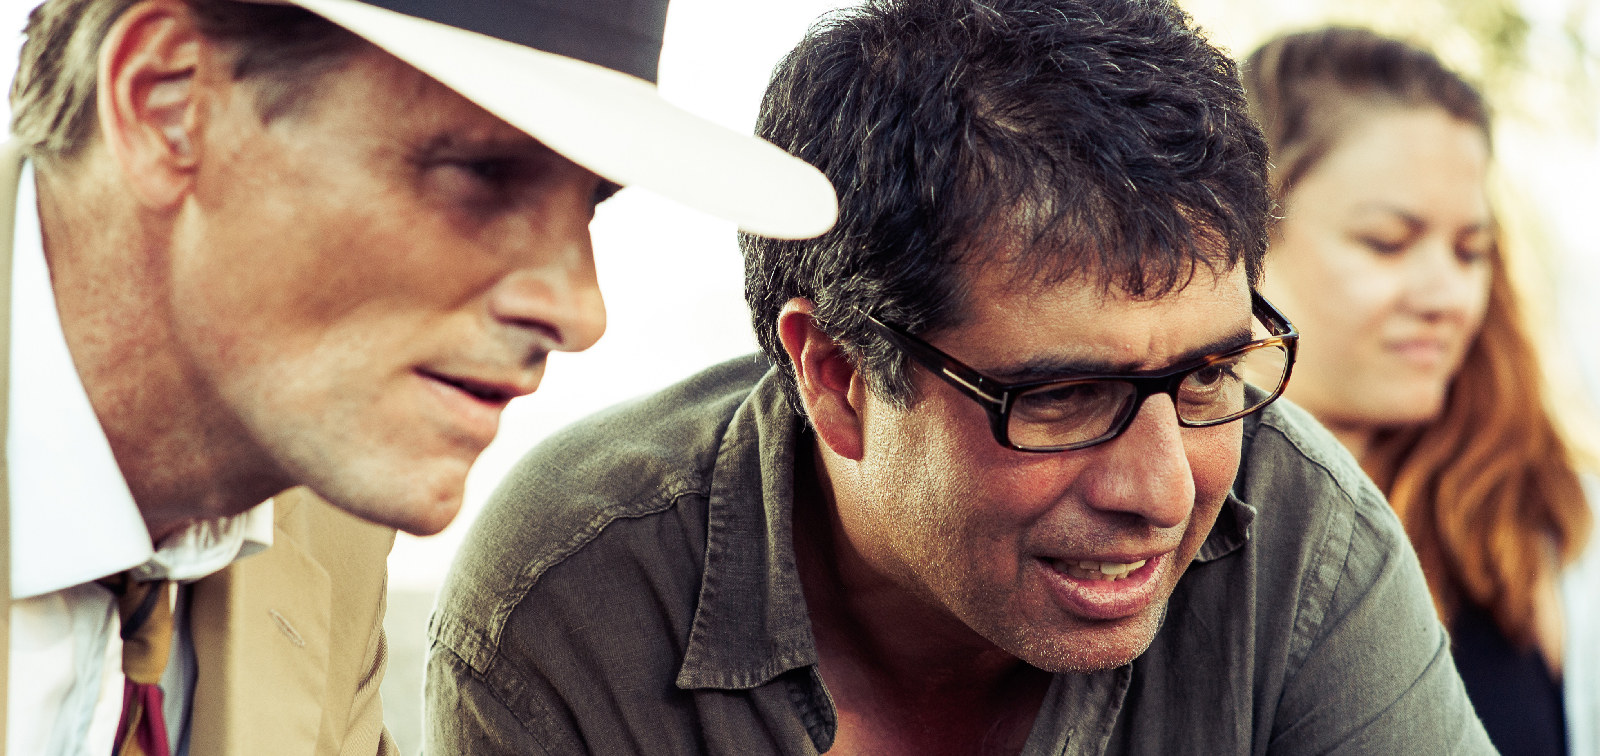 The Two Faces of January – An Interview with Writer/Director Hossein Amini